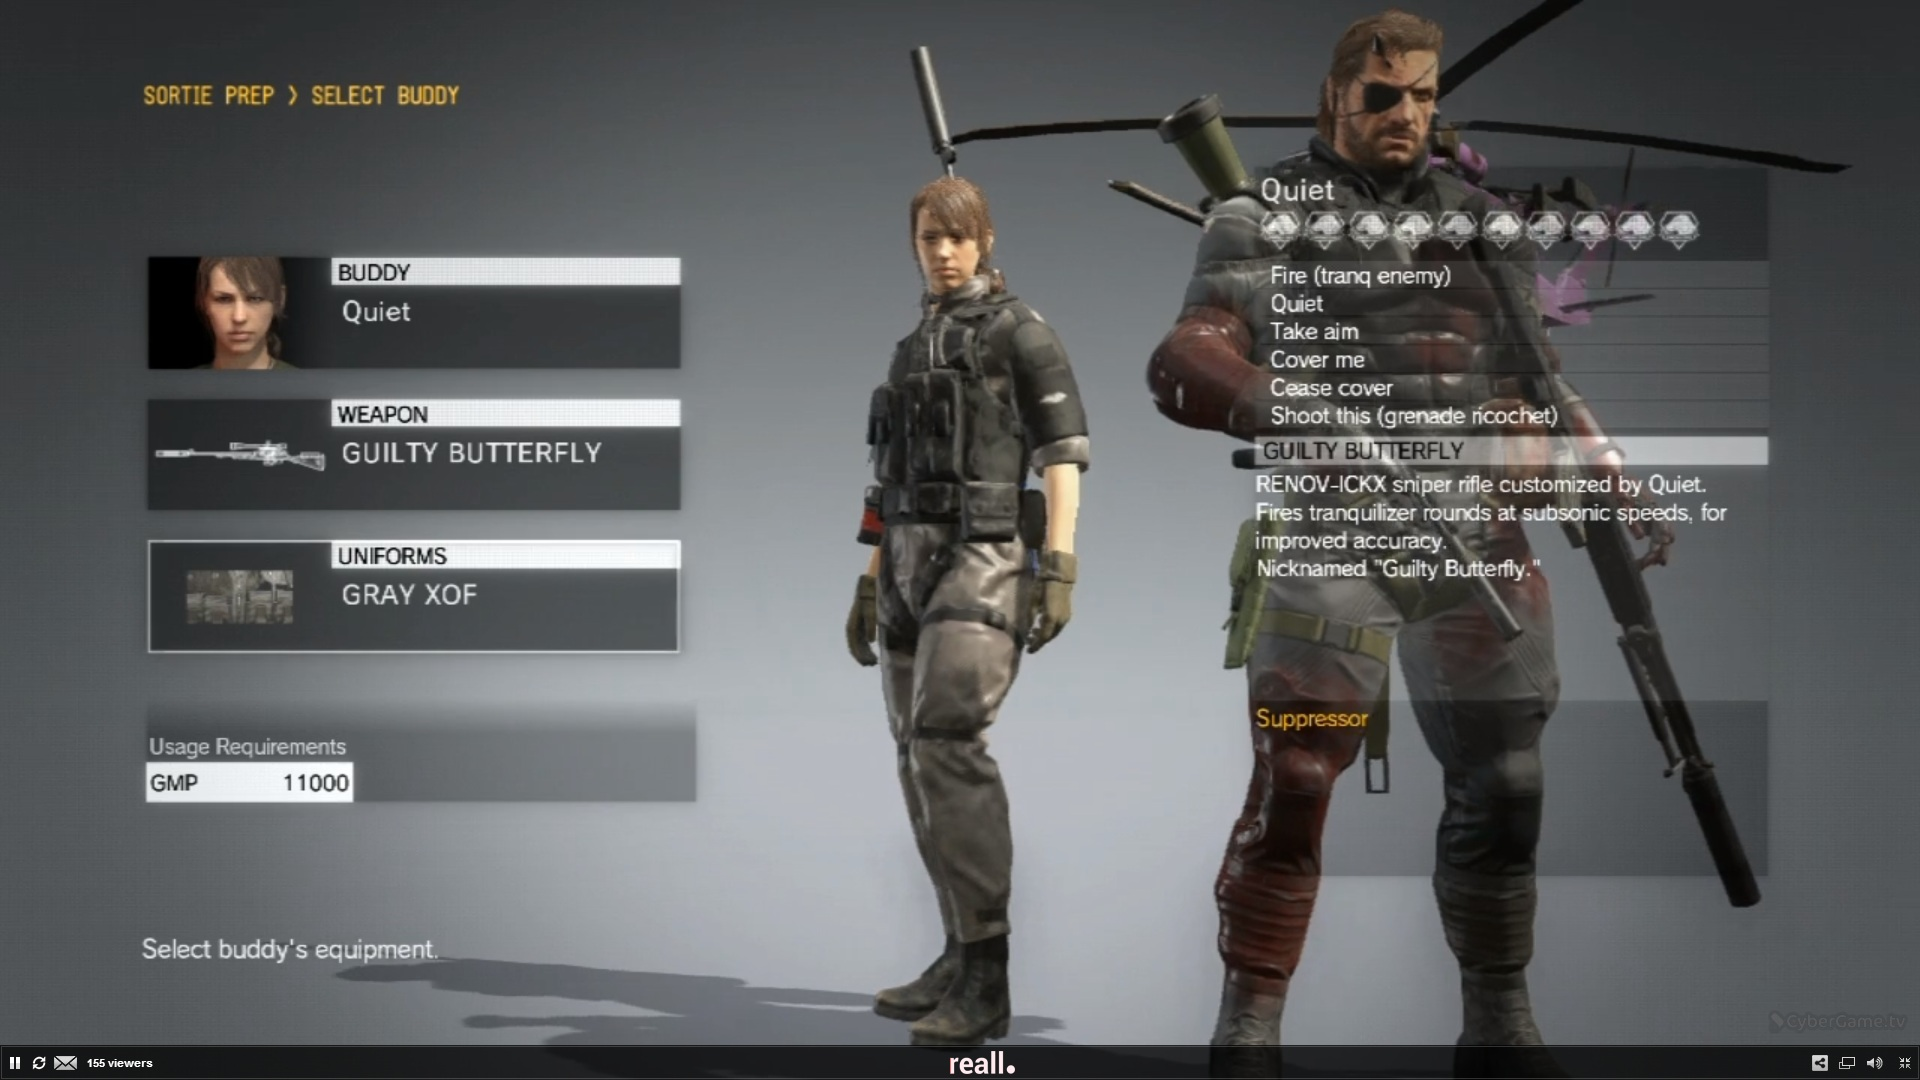 Surprise Metal Gear Solid 5 update lets you play as Quiet